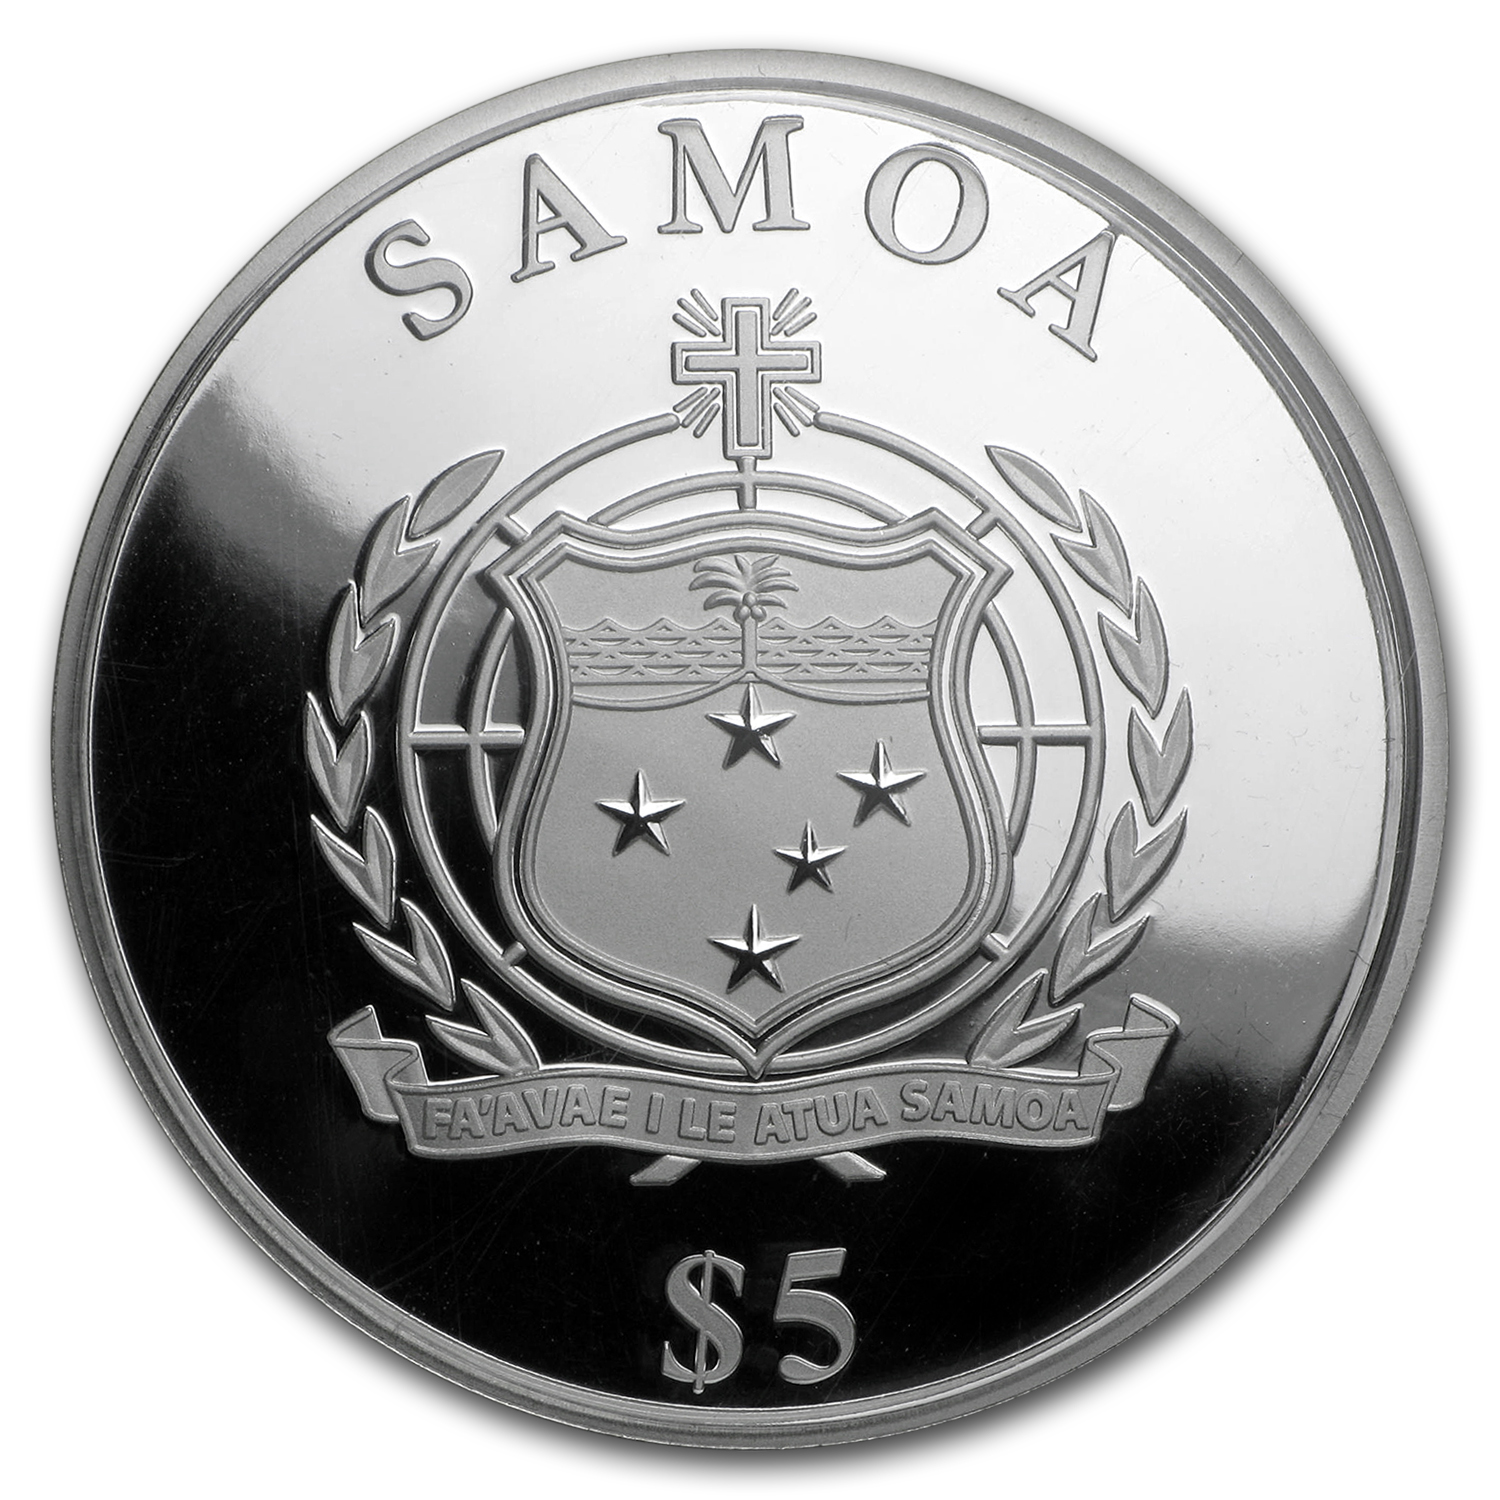 2016 Samoa 1 oz Silver $5 Four Leaf Clover Proof